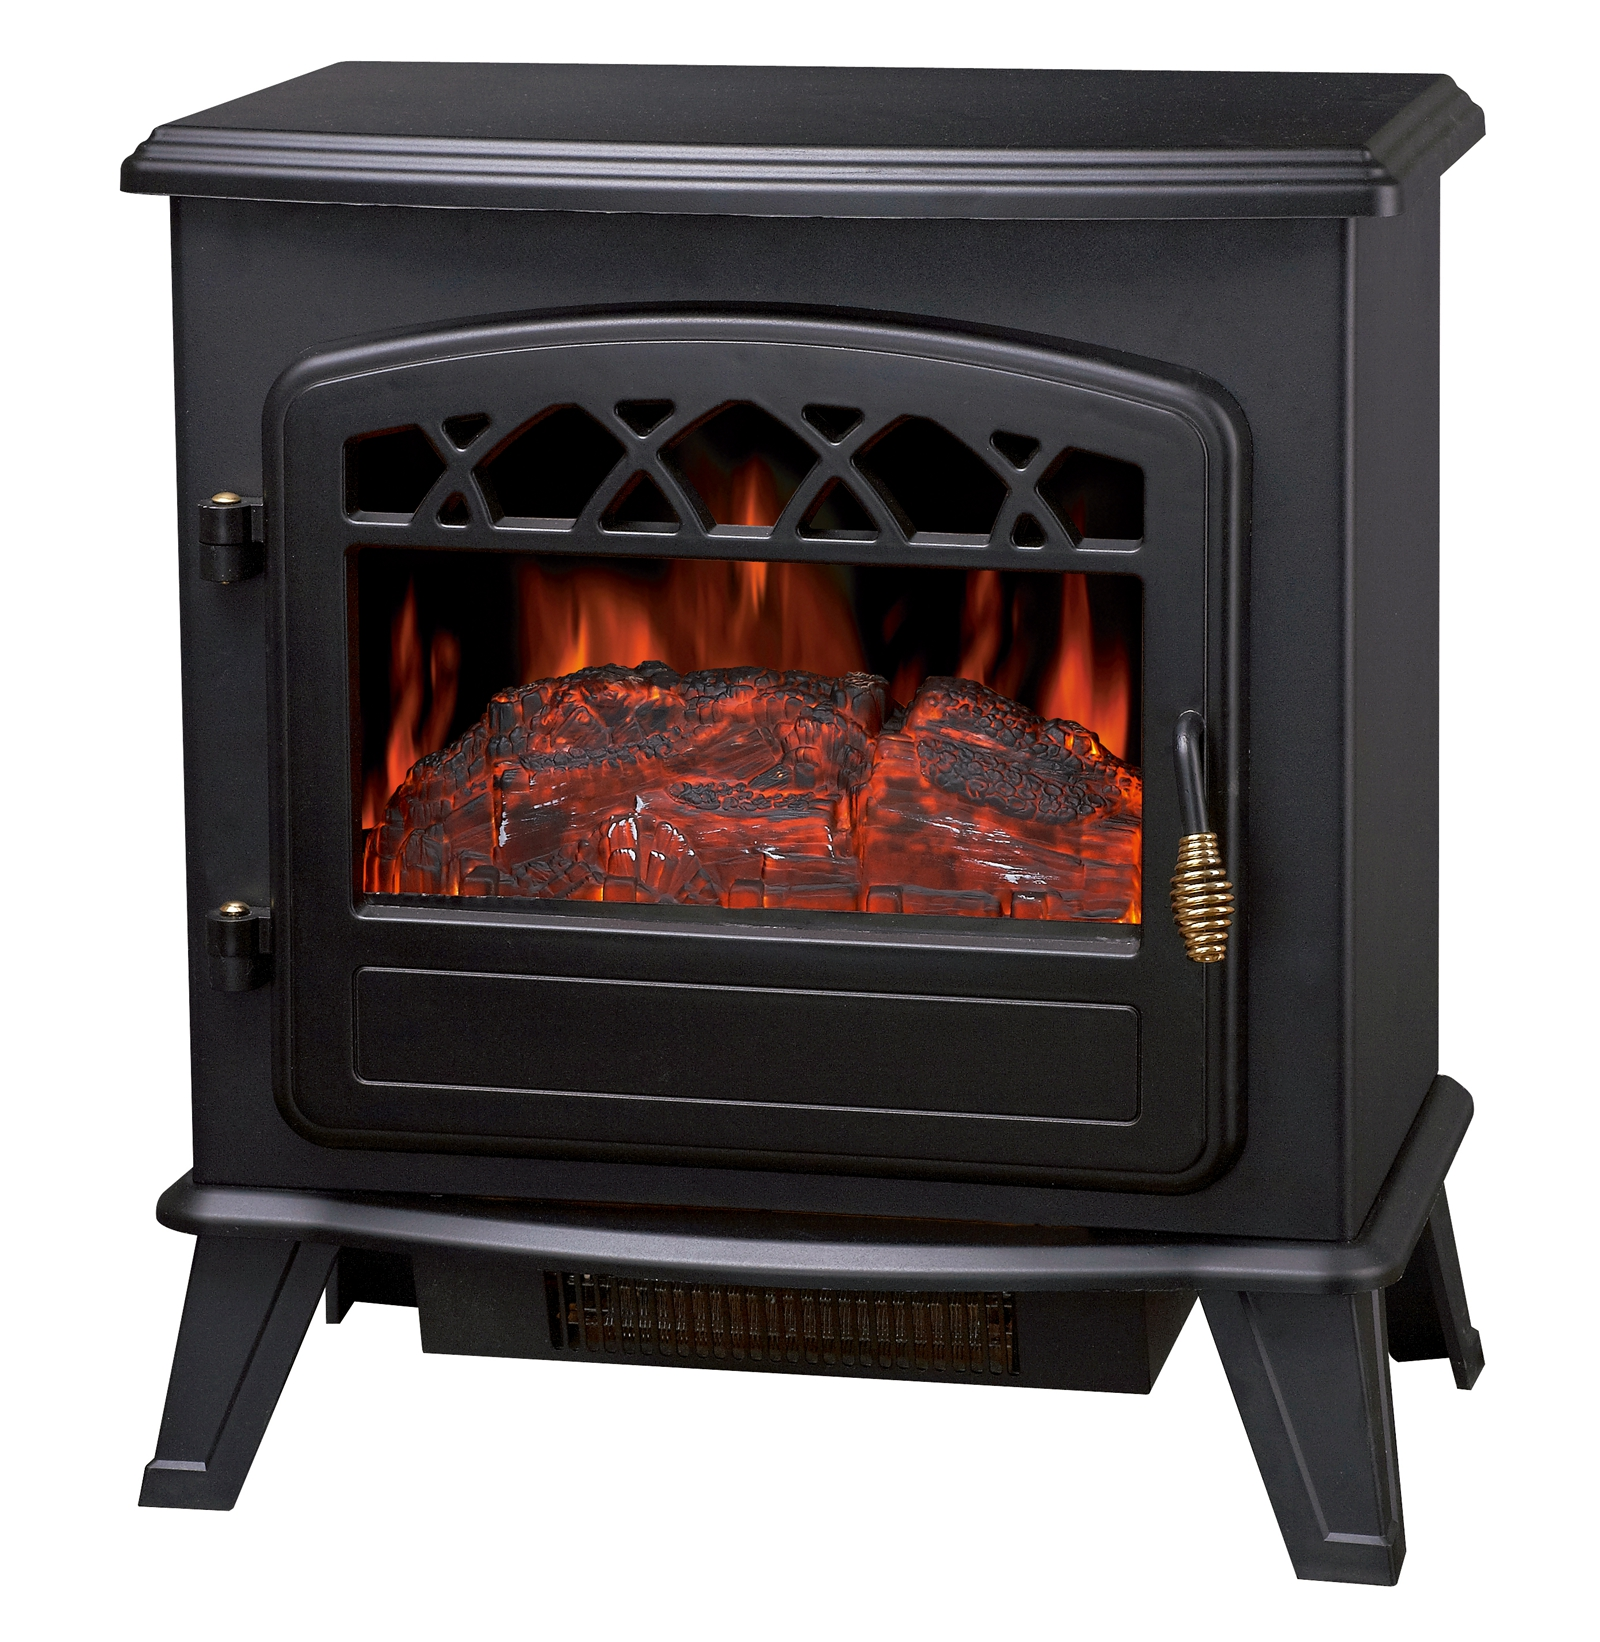 Foxhunter 1850w Log Burning Effect Electric Fire Stove Heater Fireplace Nd 181m Ebay